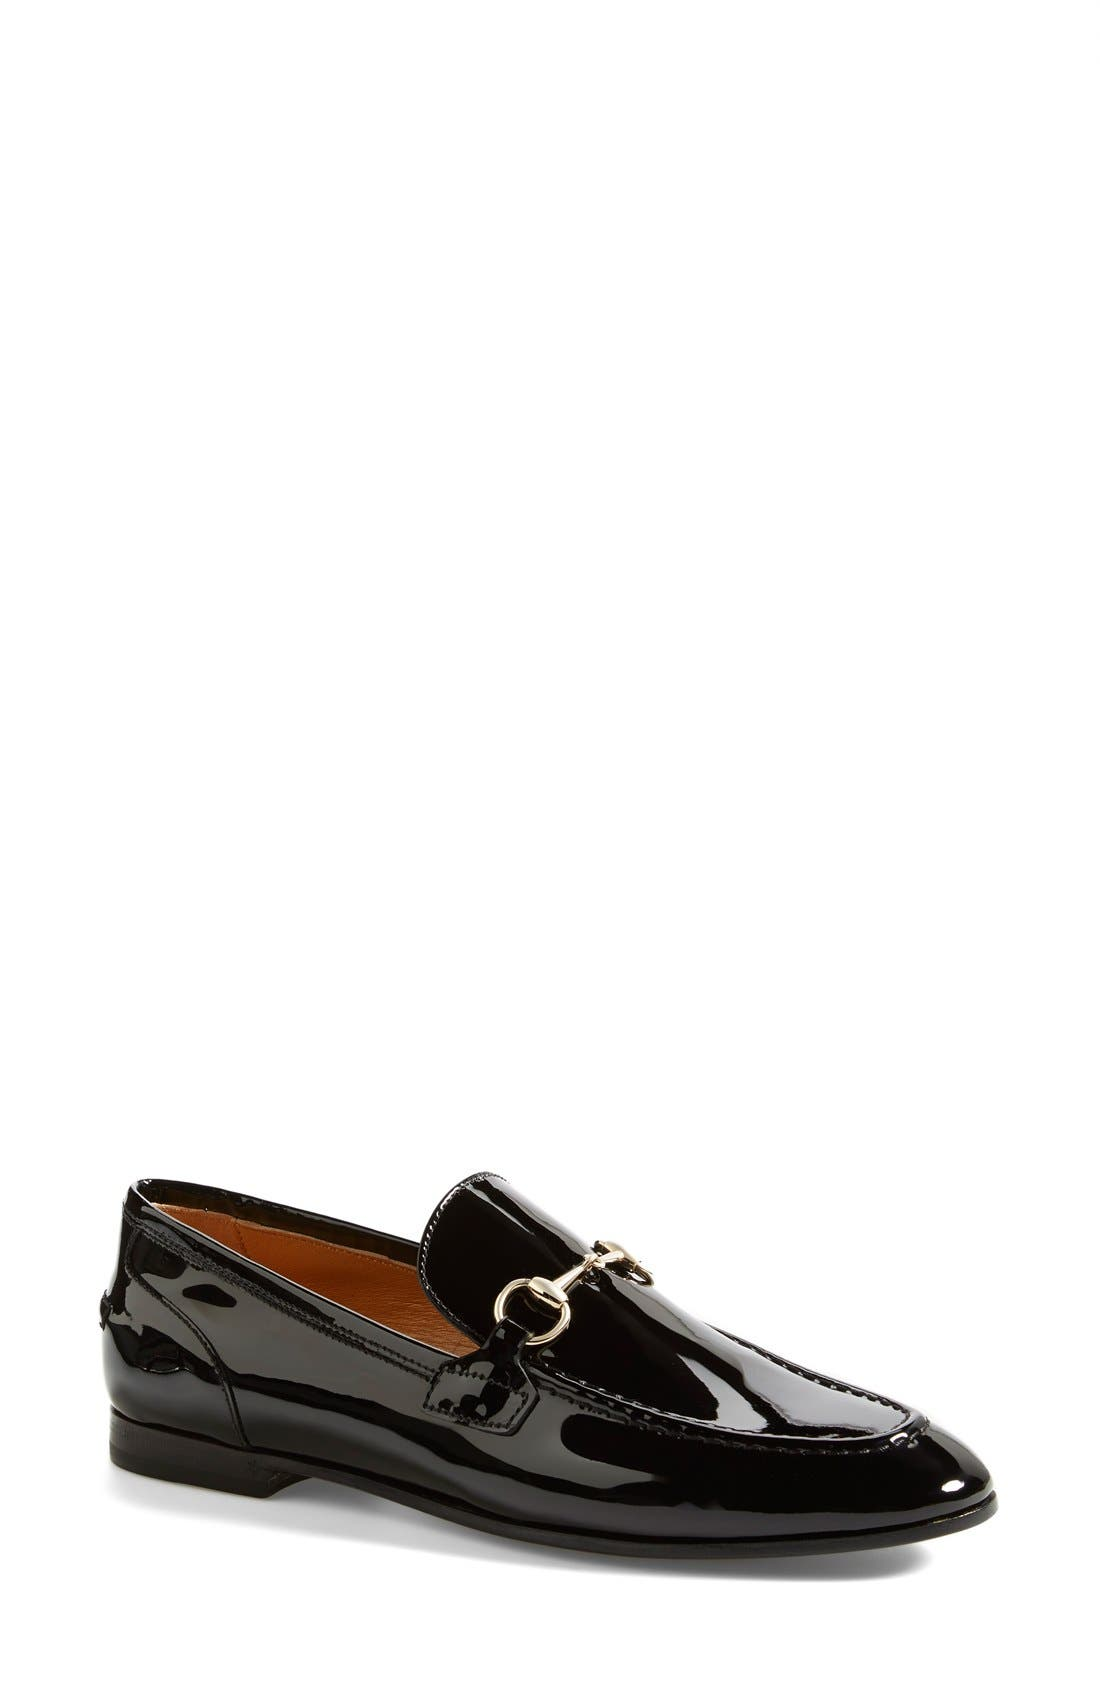 Main Image - Gucci 'New Power' Patent Leather Loafer